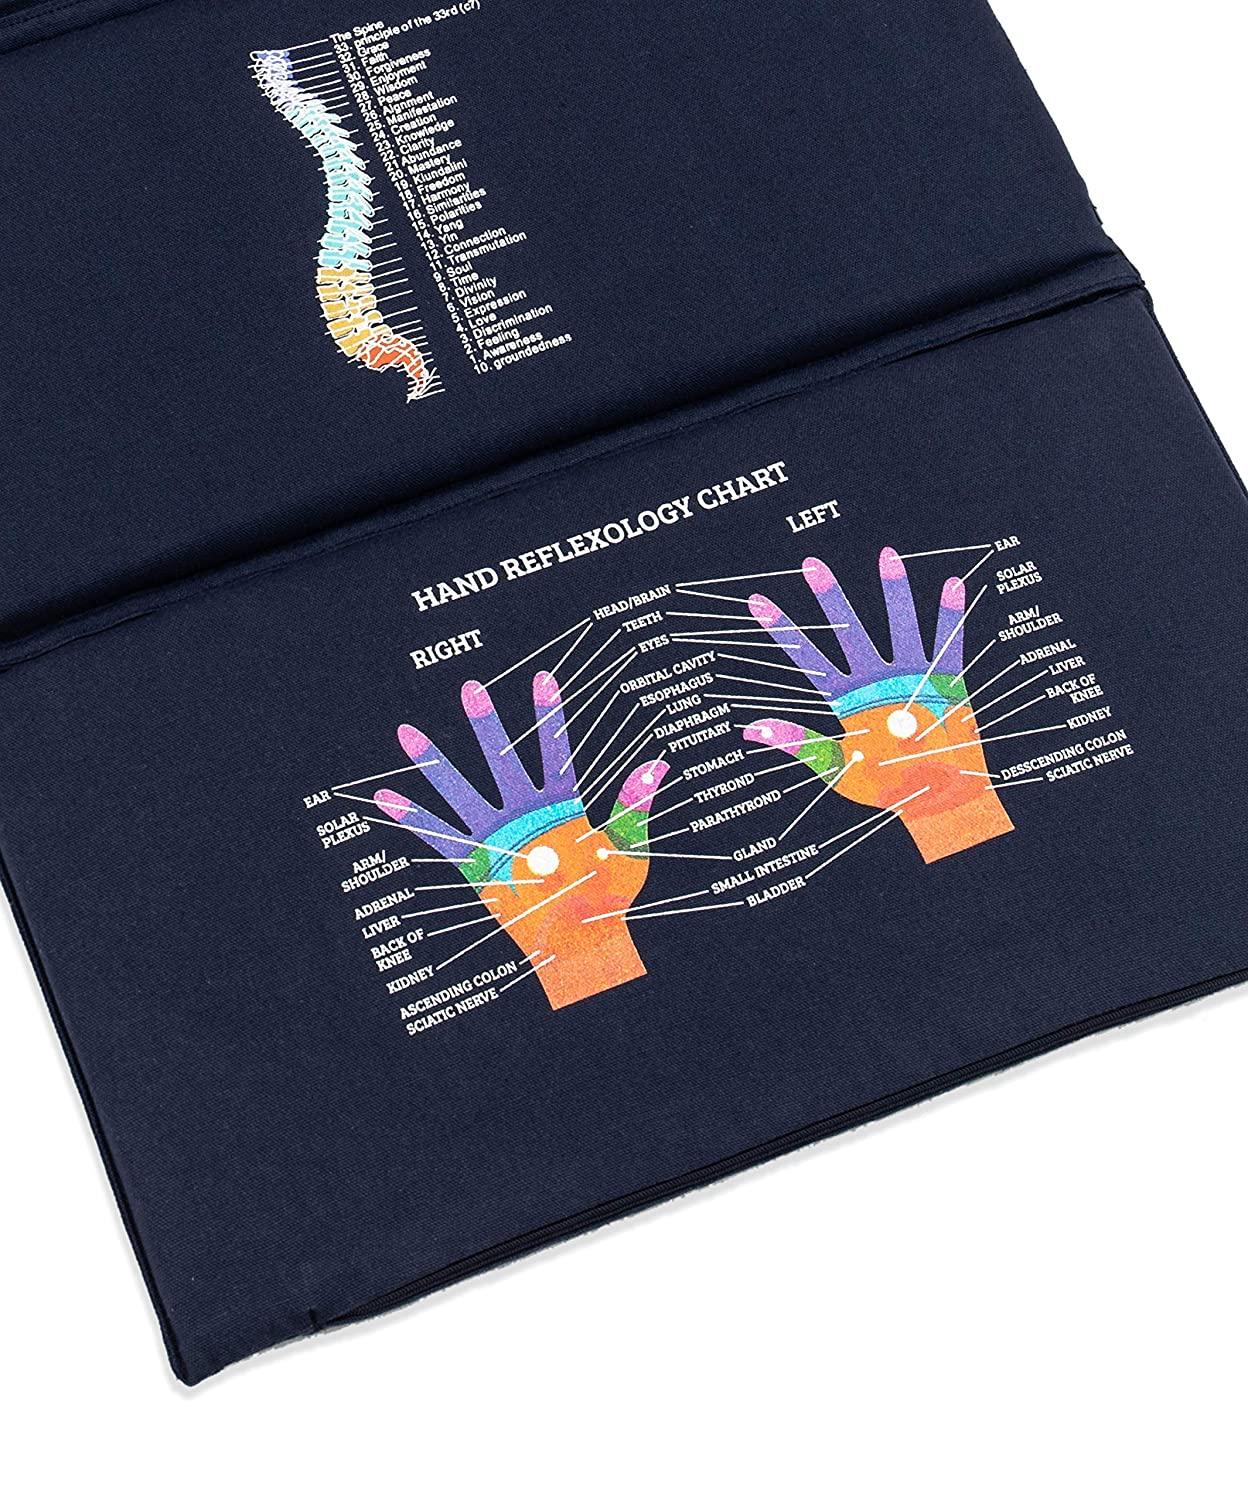 Neck teal Back Relieves Stress and Sciatic Pain Acupressure Spike Reflexology Mat Natural Linen Cotton Mini Mat and Pillow Set Spikes for life Back and Neck Pain Relief